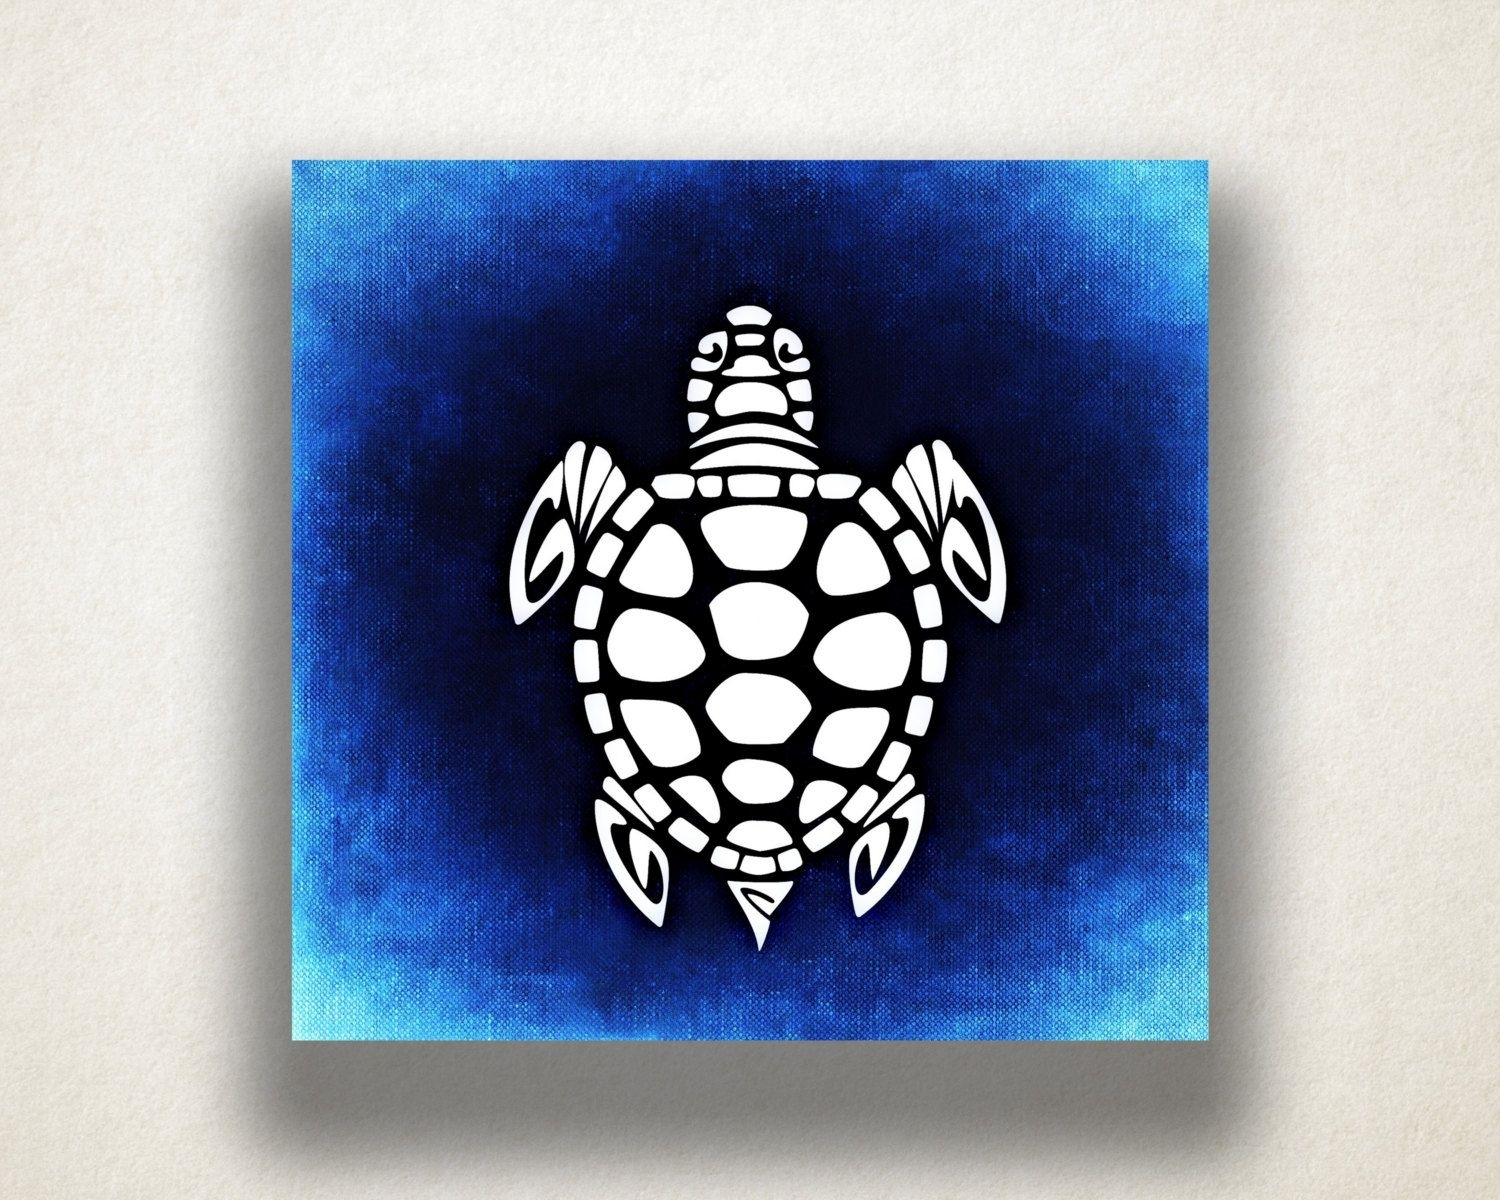 Blue Sea Turtle Canvas Art Print, Oceanlife Wall Art, Animal Canvas Intended For Recent Sea Turtle Canvas Wall Art (View 14 of 20)